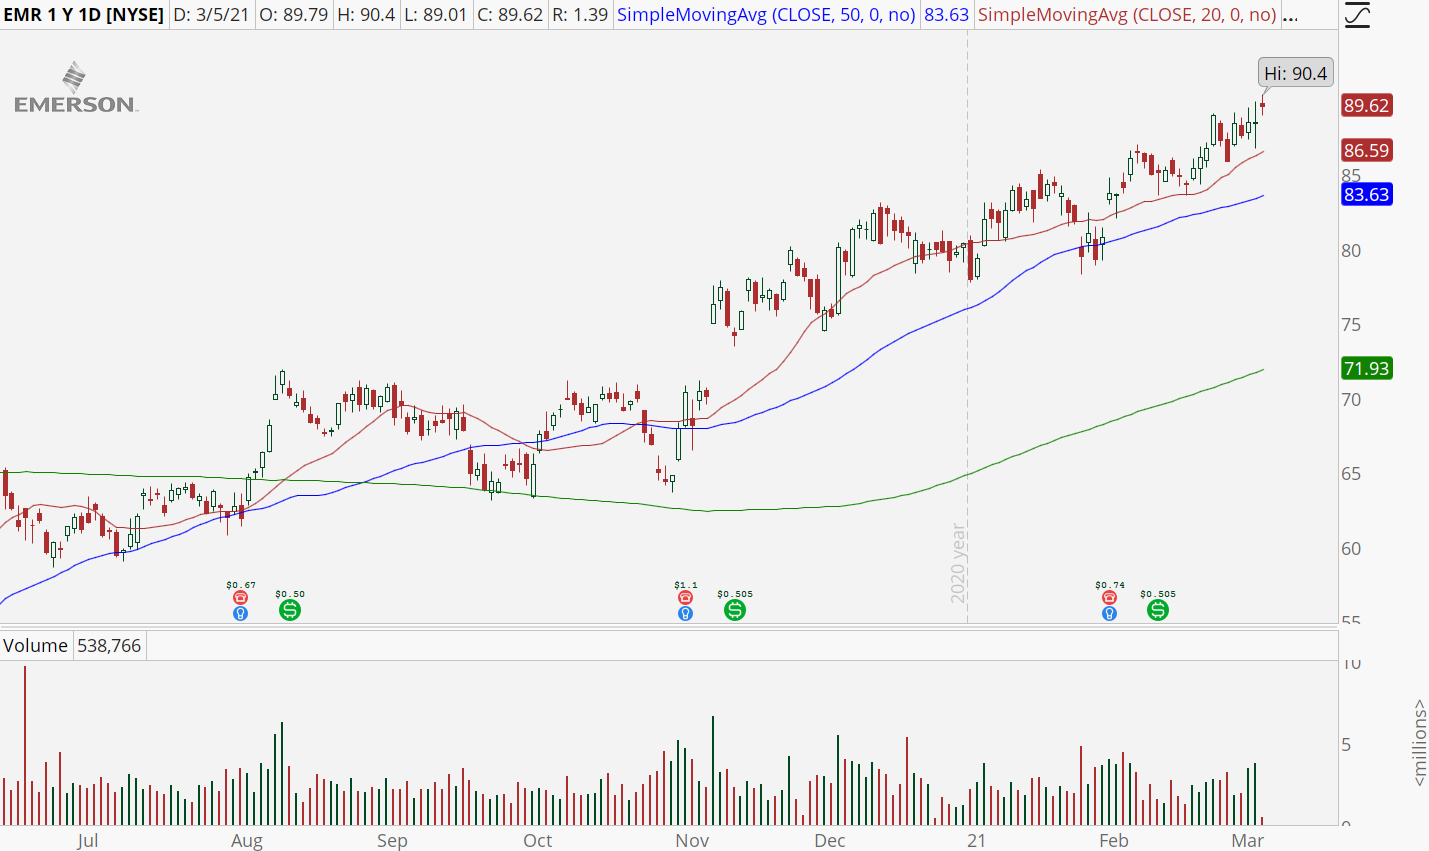 Emerson (EMR) stock with new all-time high